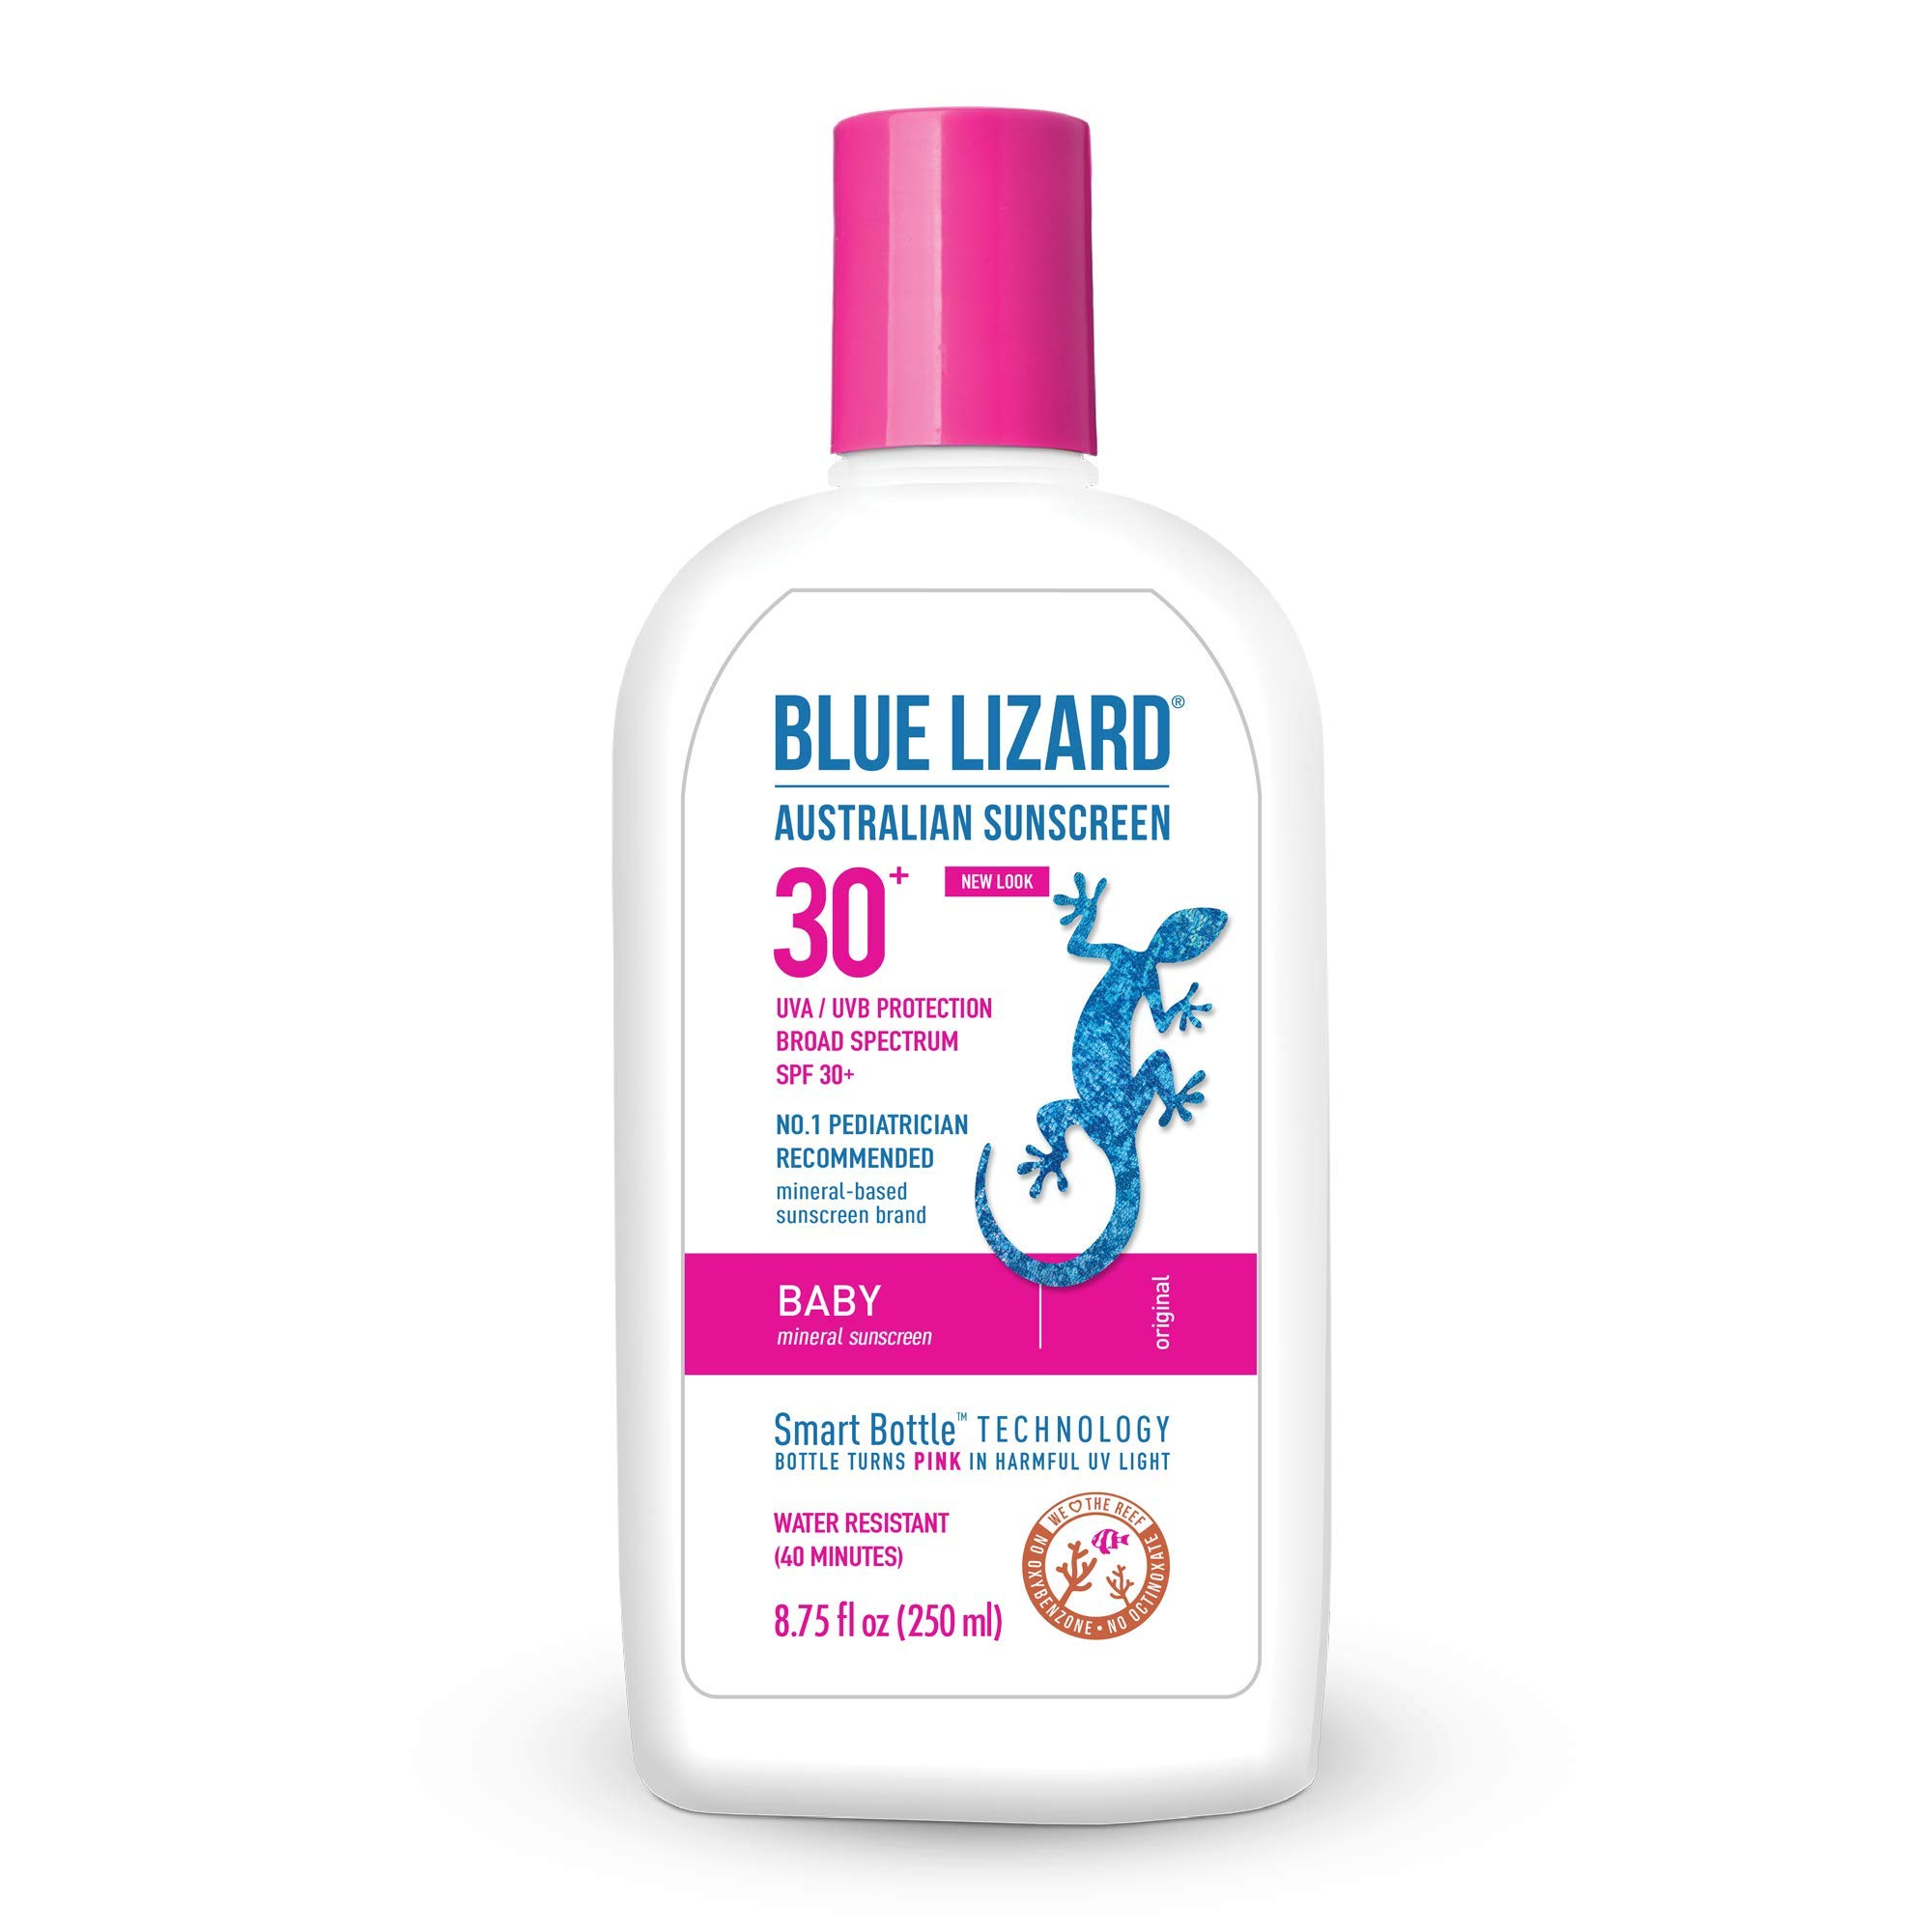 Blue Lizard Baby Sunscreen SPF 30, 8.75 oz Bottle